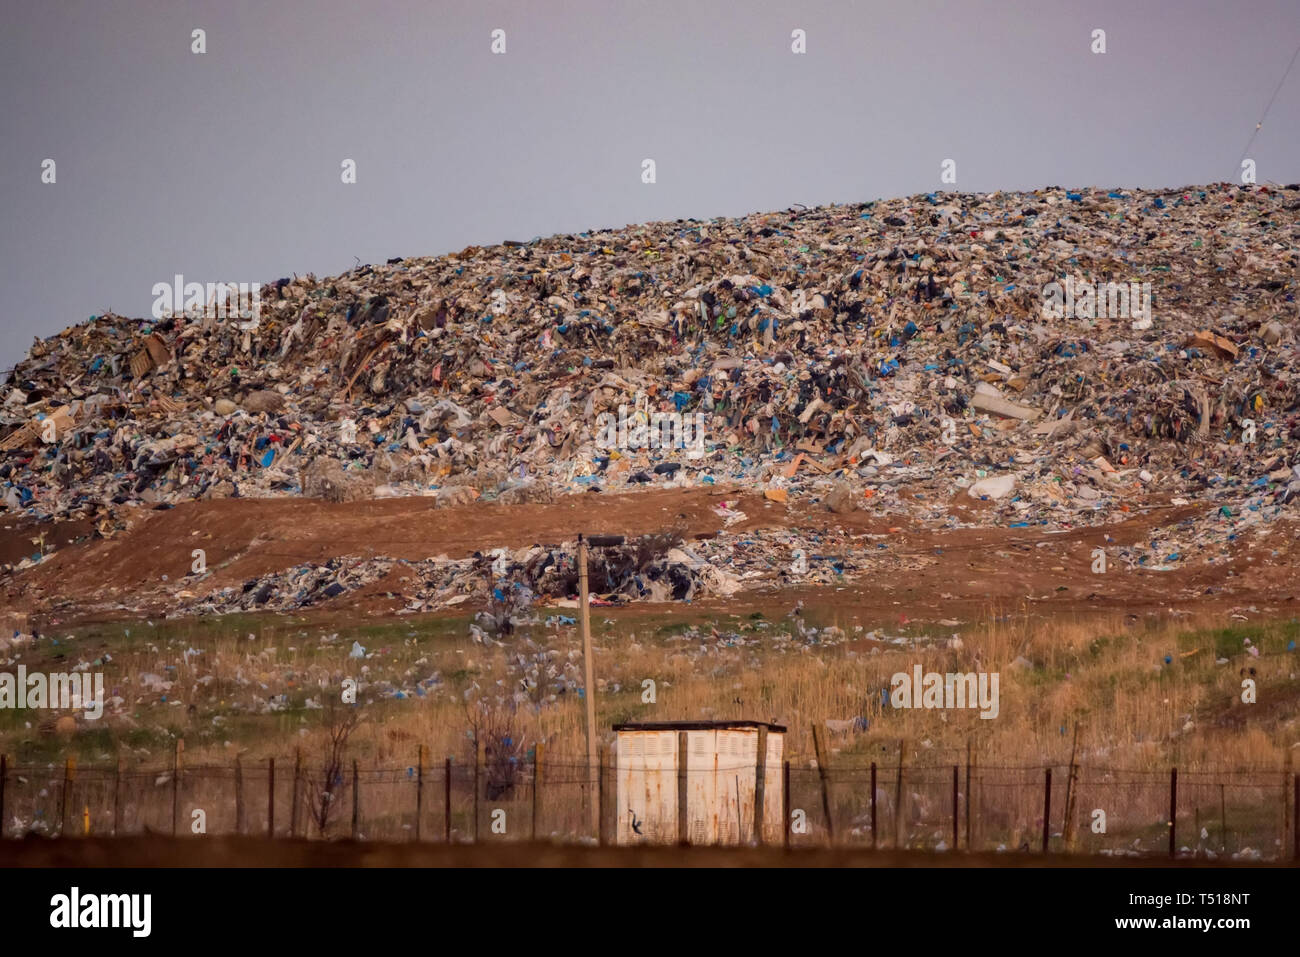 View of a big landfill outside the city behind the gate - Stock Image